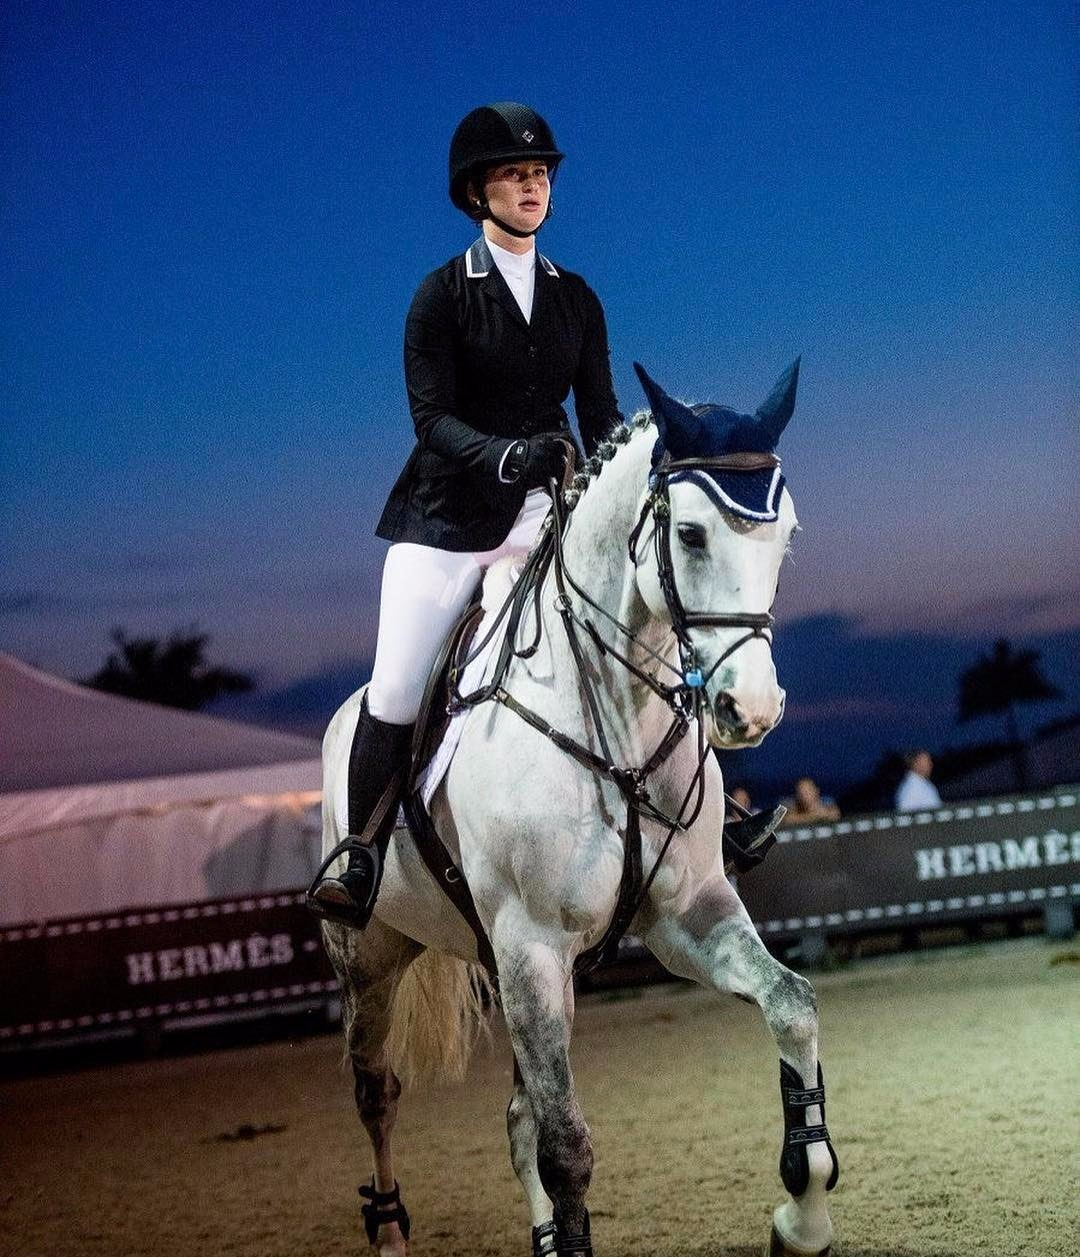 Jennifer Katherine Gate riding on a white horse. She looks confident while she is riding. She is dressed in a professional horse riding suit.